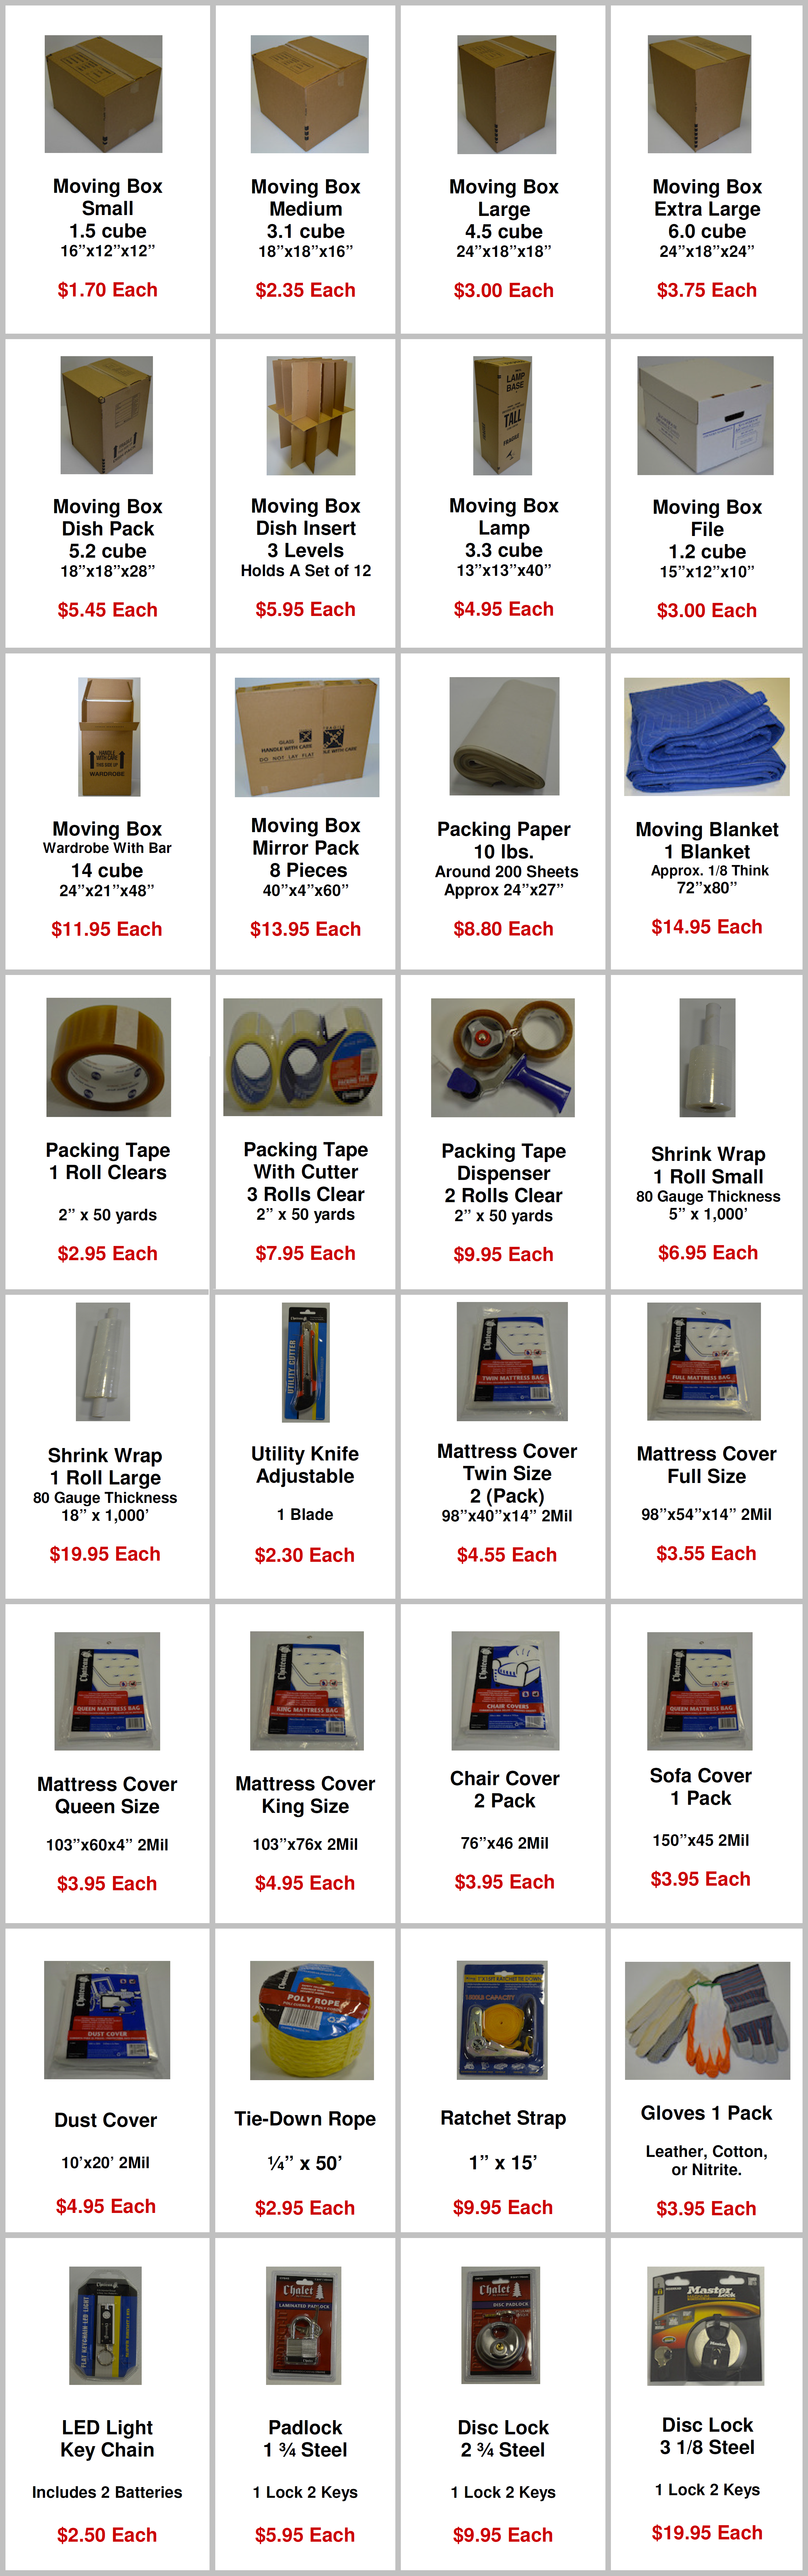 packing material list and pricing